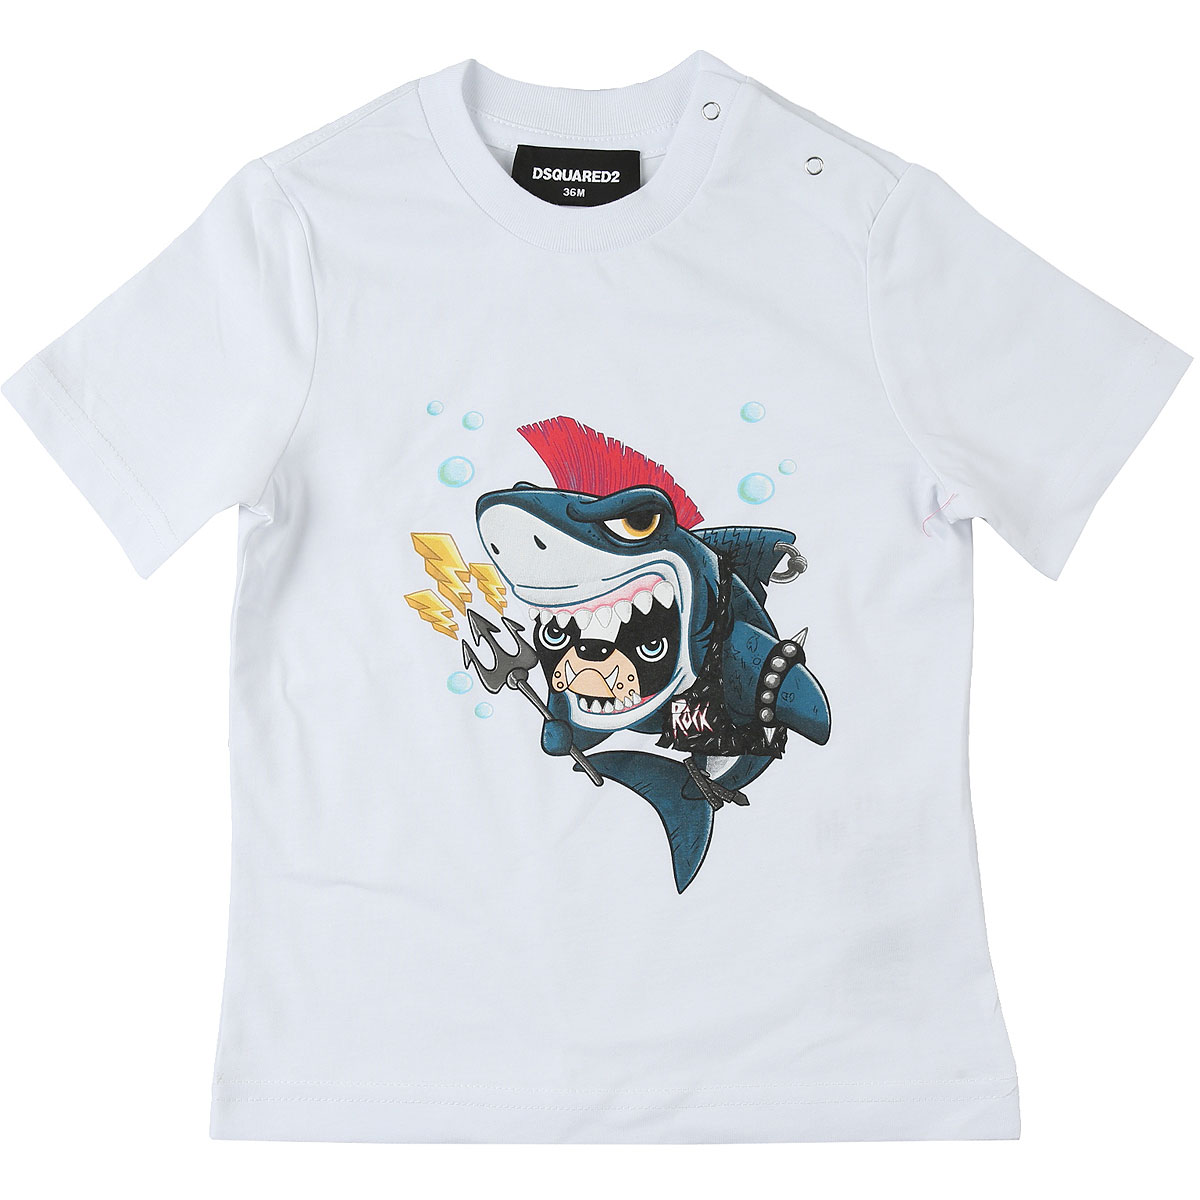 Dsquared2 Baby T-Shirt for Boys On Sale, White, Cotton, 2019, 18M 2Y 3Y 9M